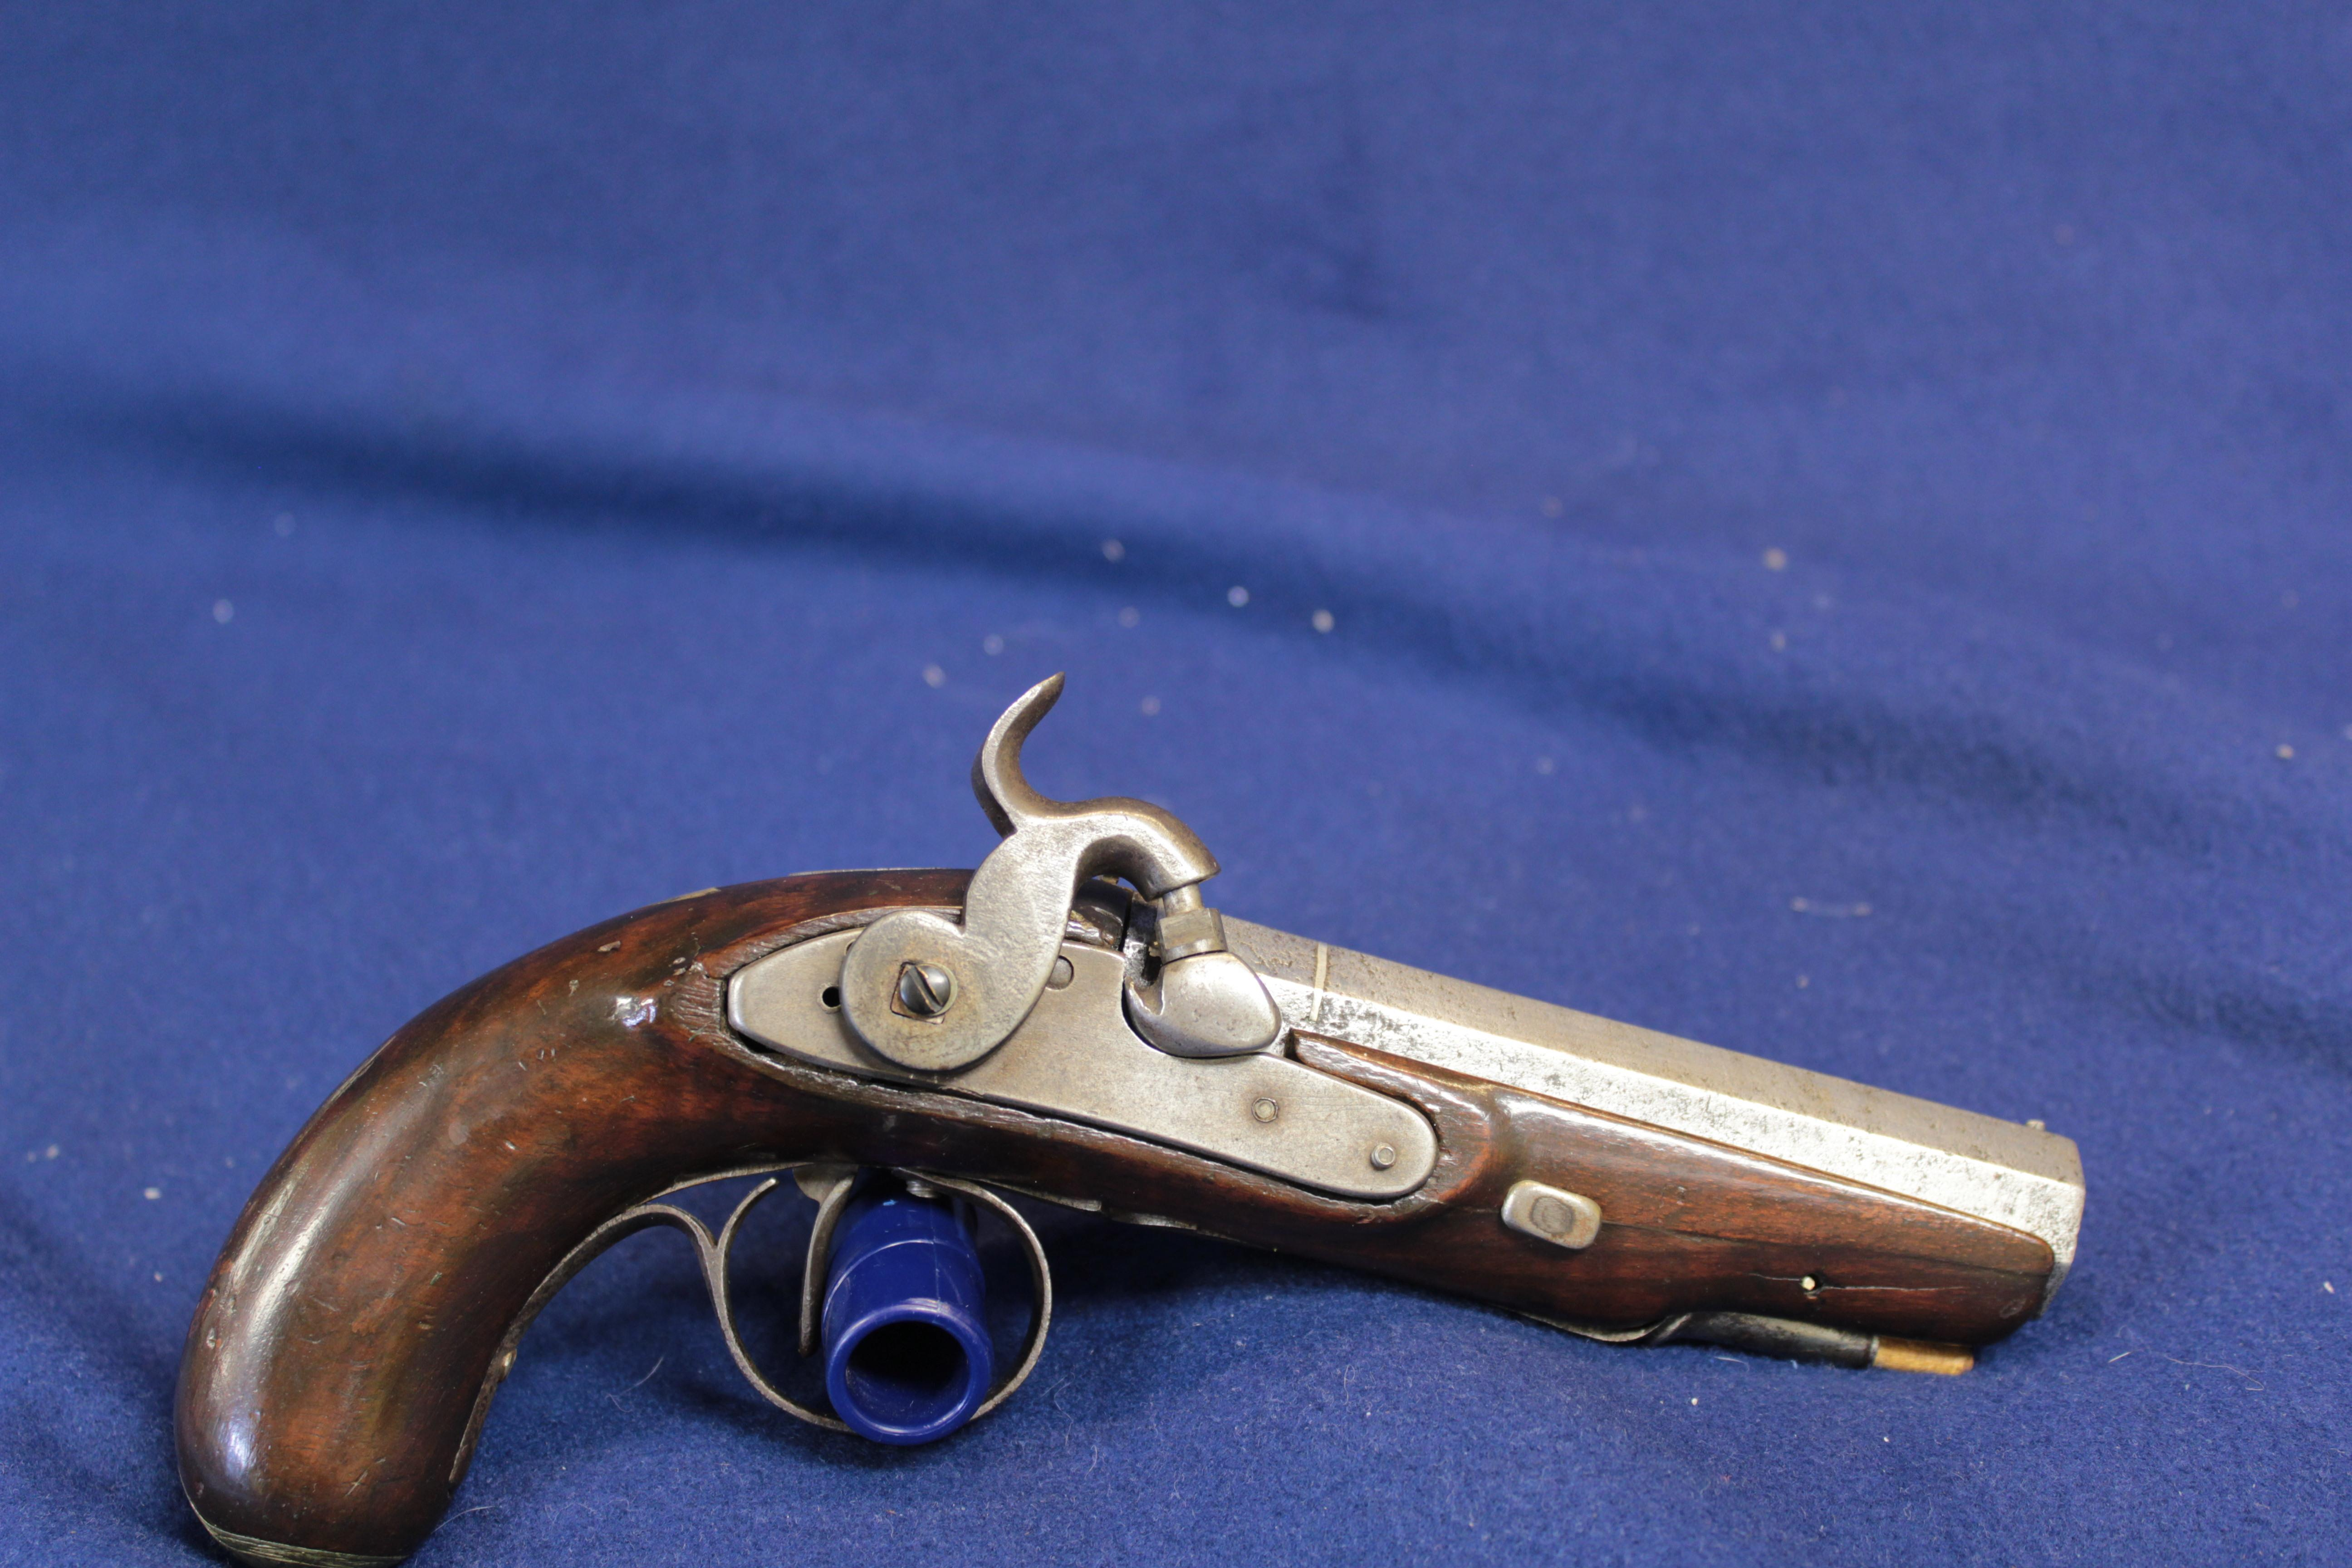 Wm Pattison Ireland Percussion Pistol  Guns > Pistols > Antique (Pre-1899) Pistols - Perc. Misc.